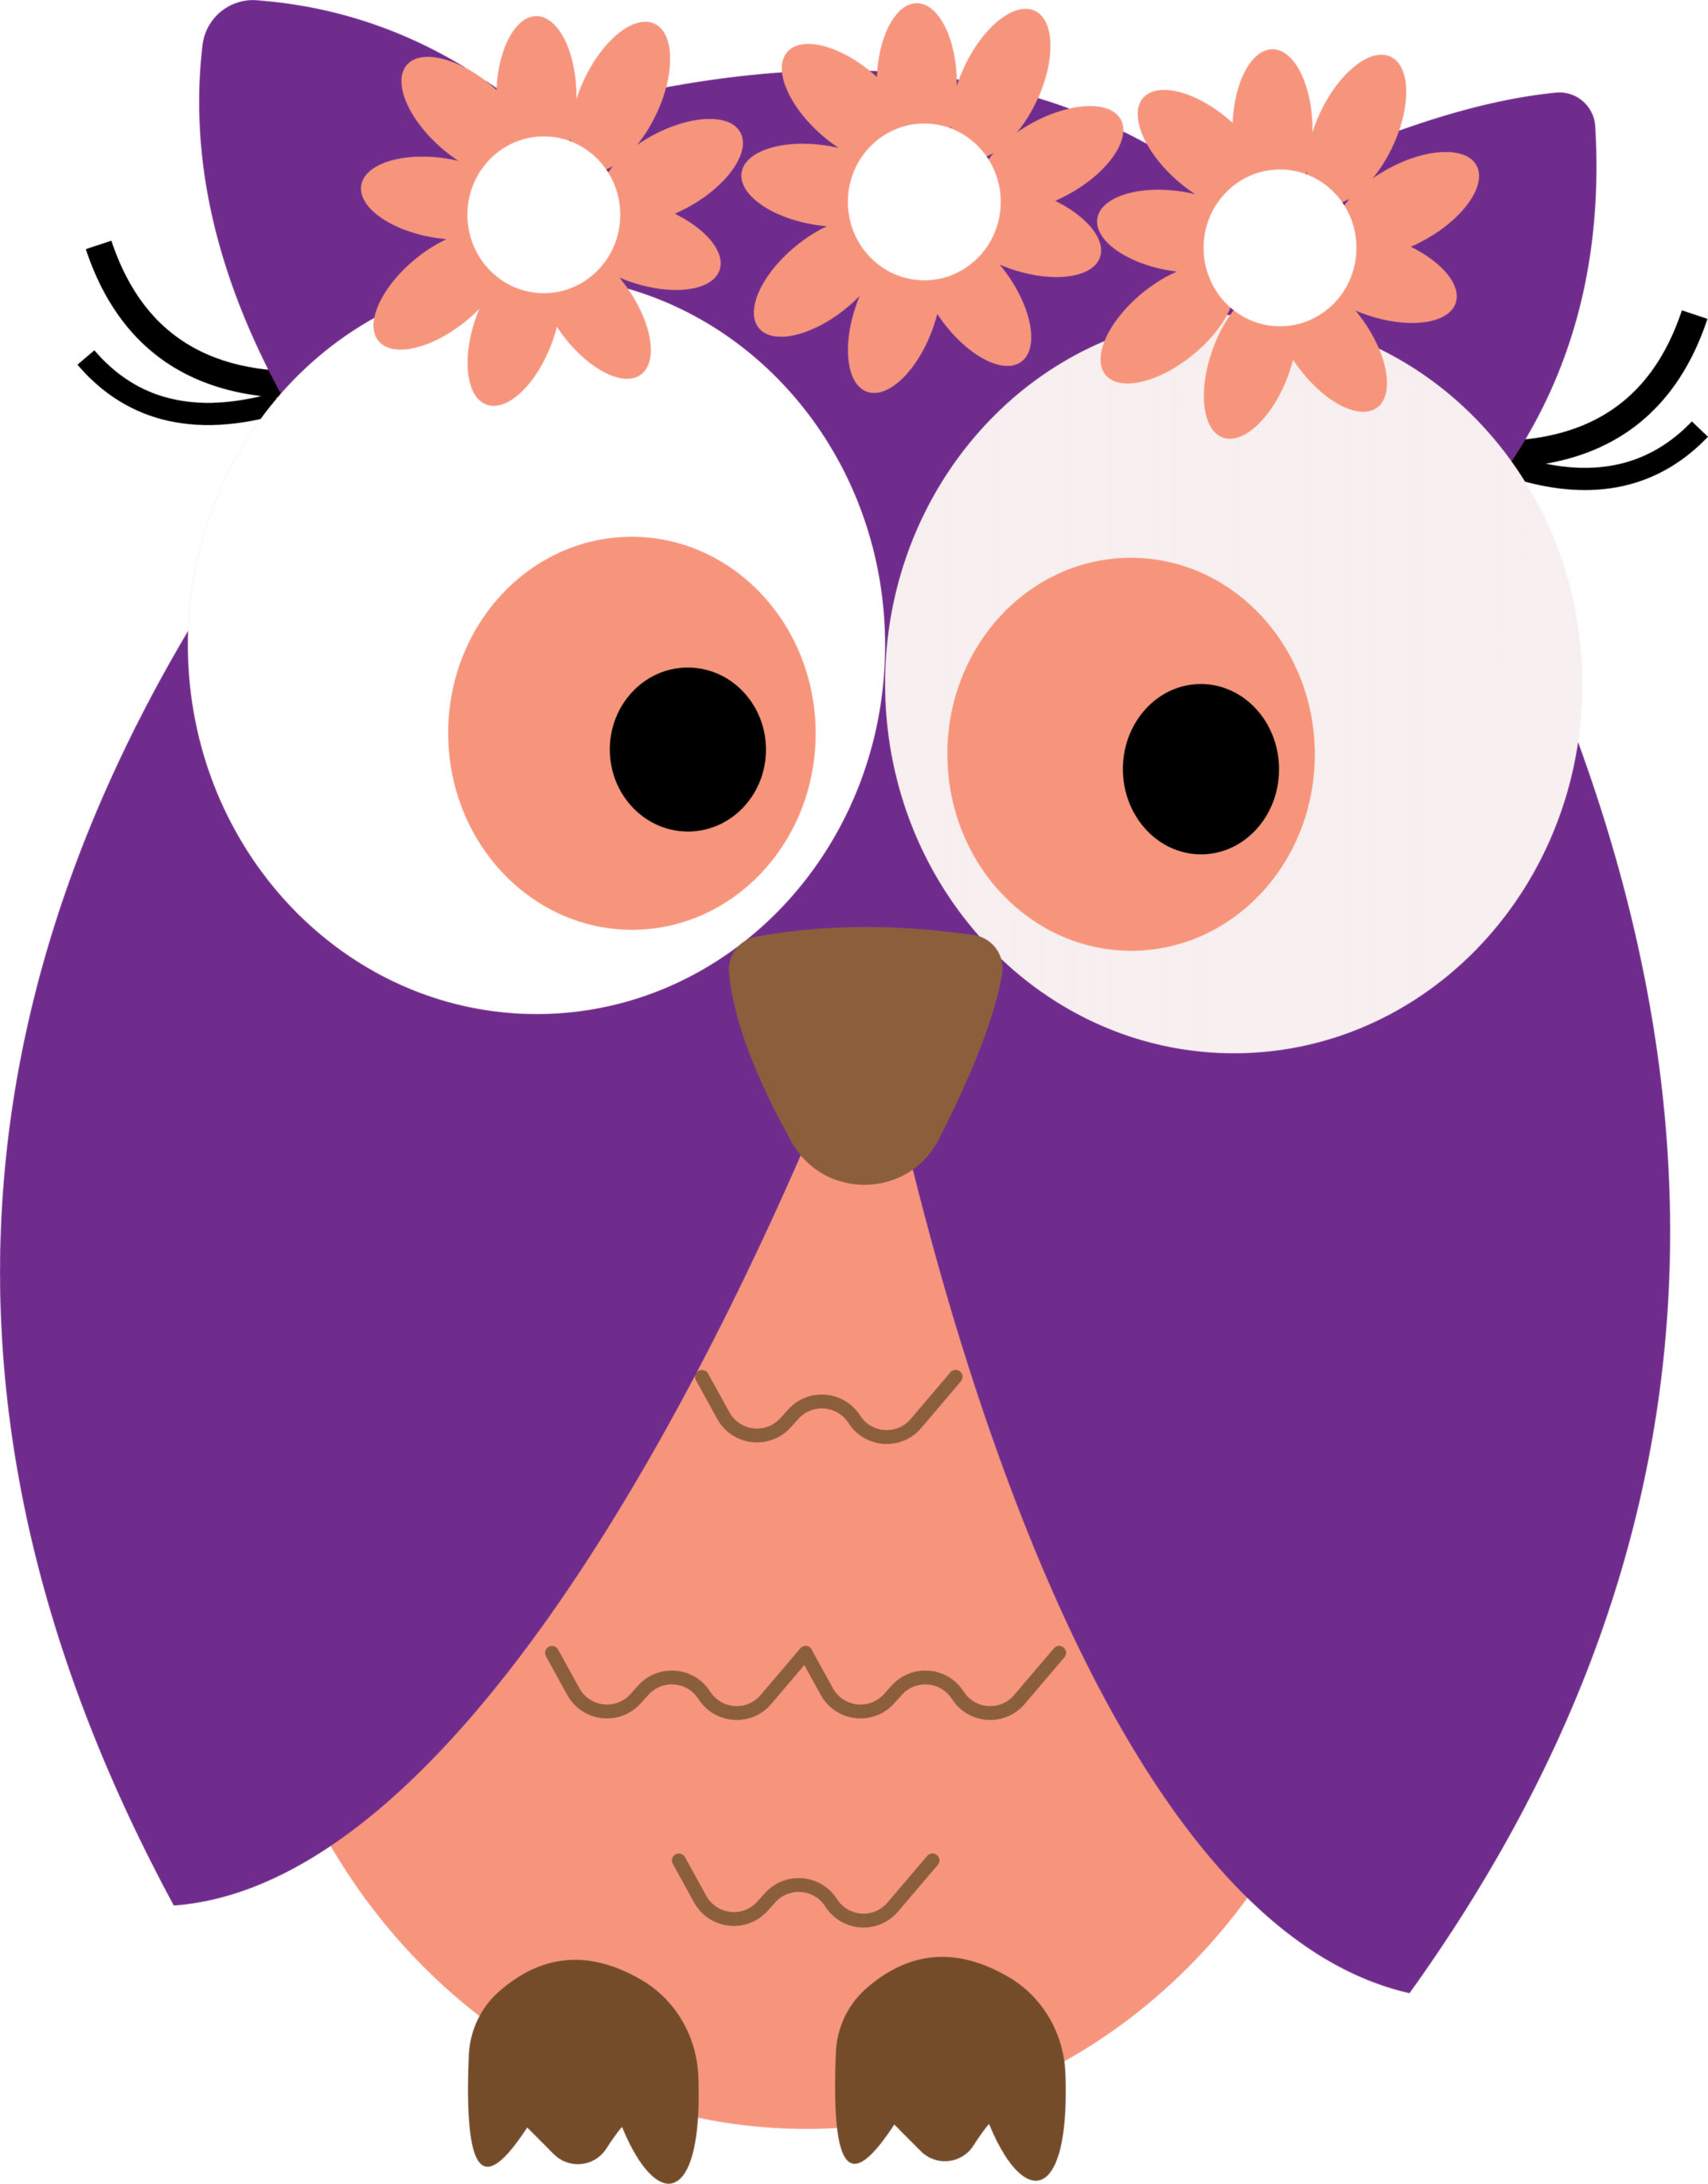 Ch b graduation owls. Night clipart cute